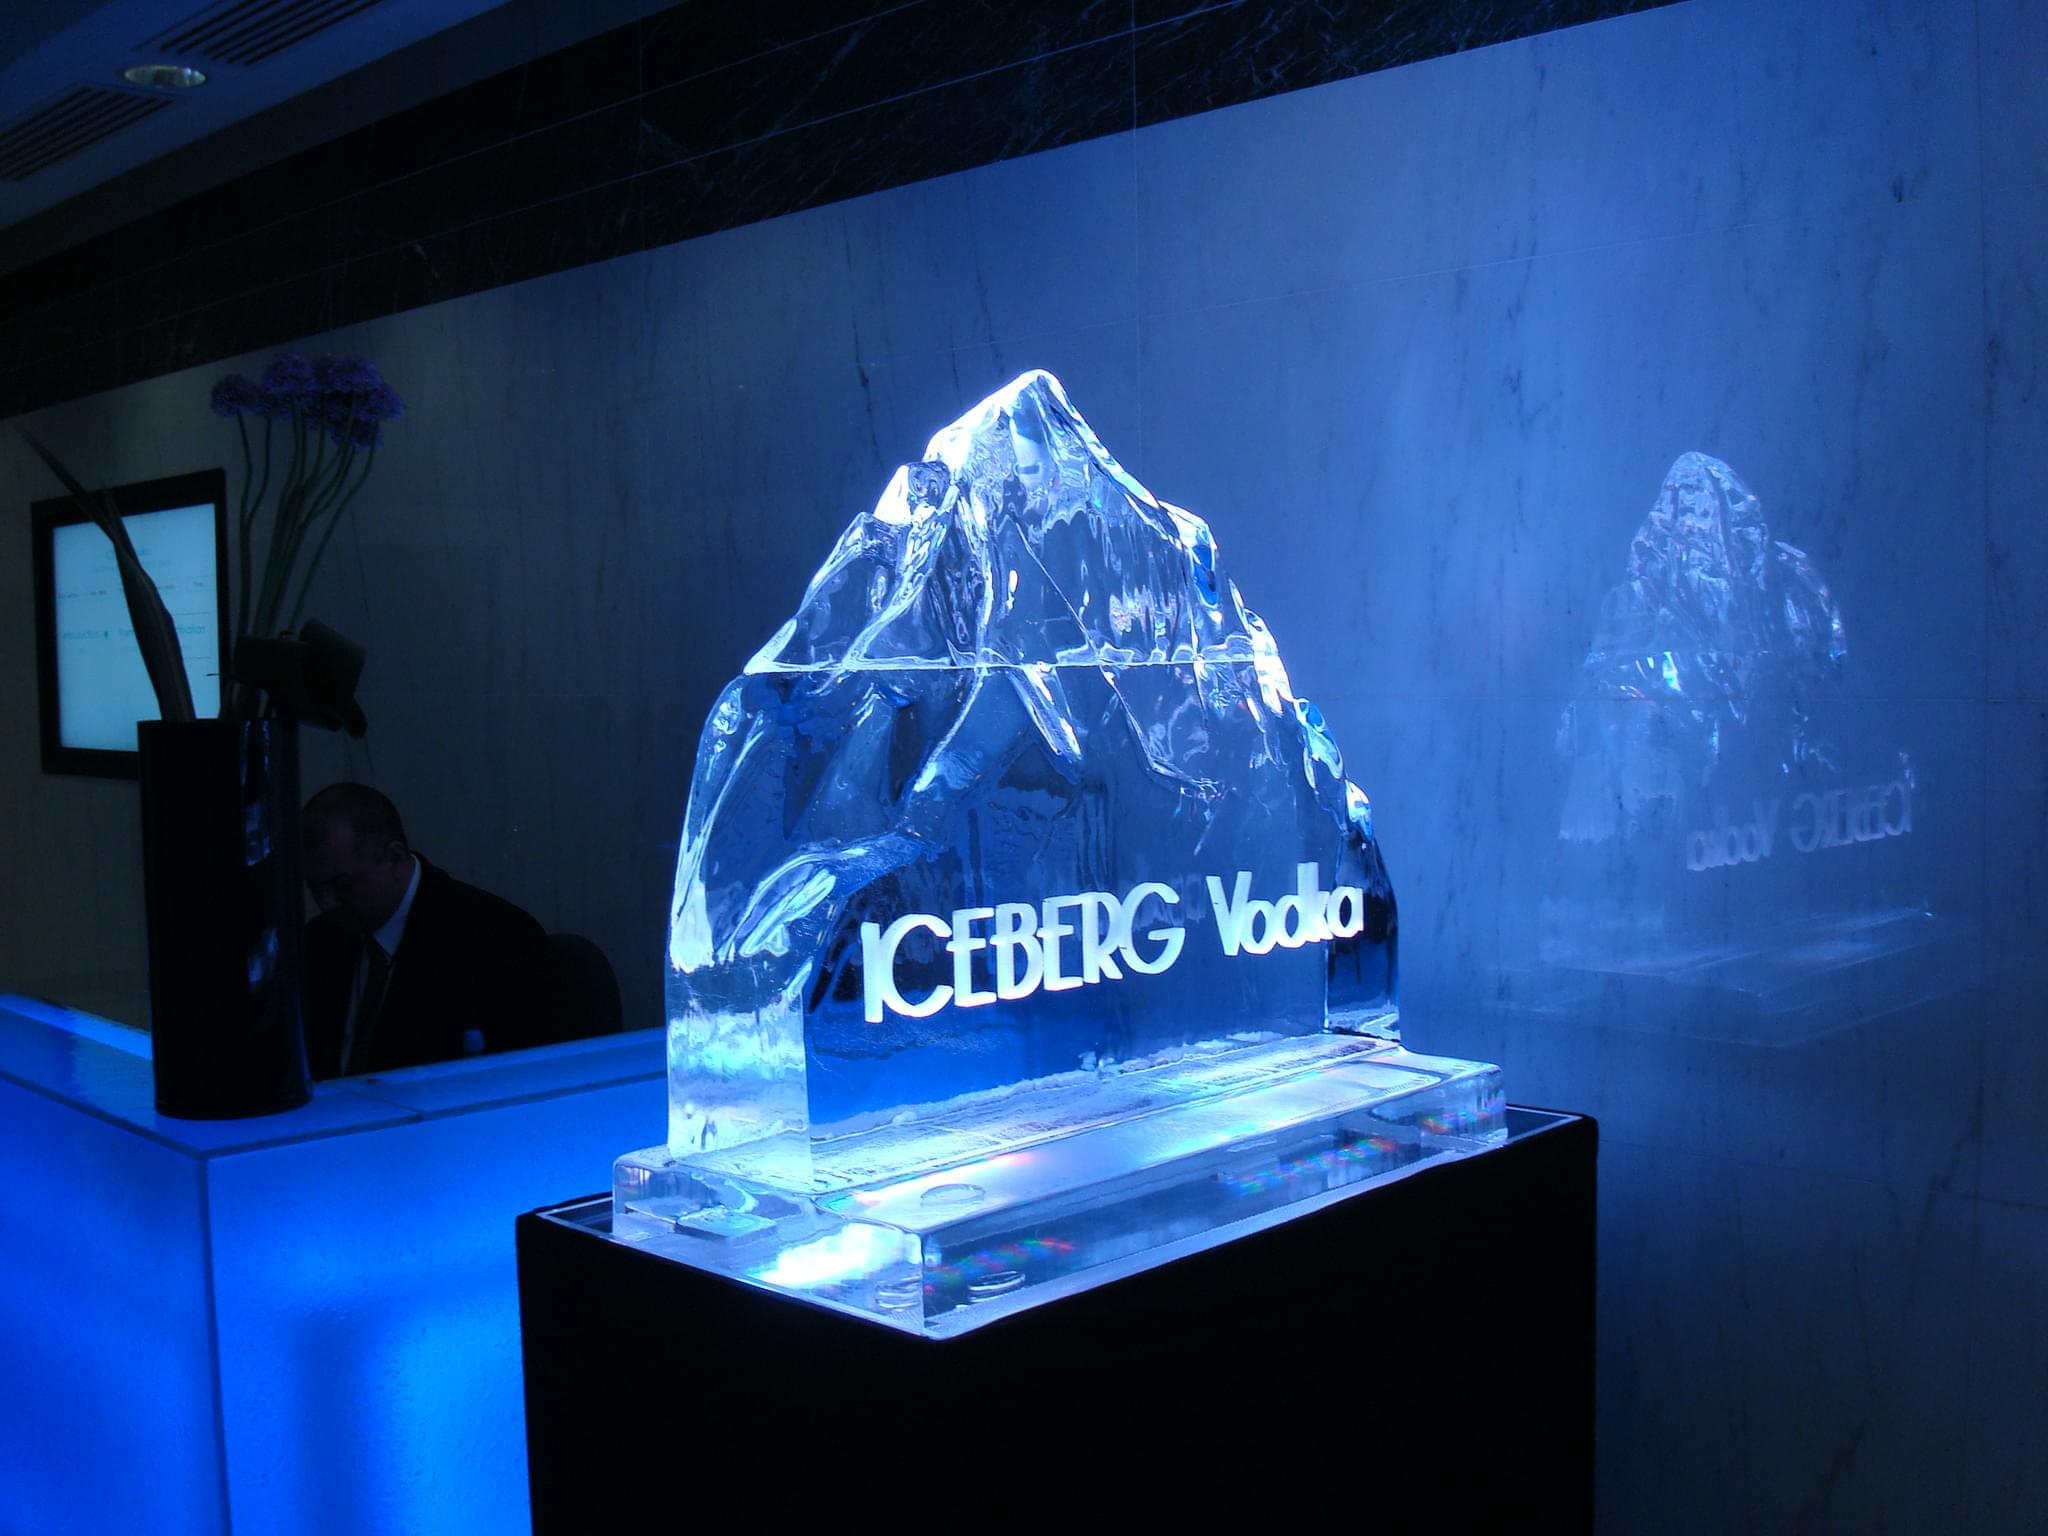 Vodka, Luge, Logo